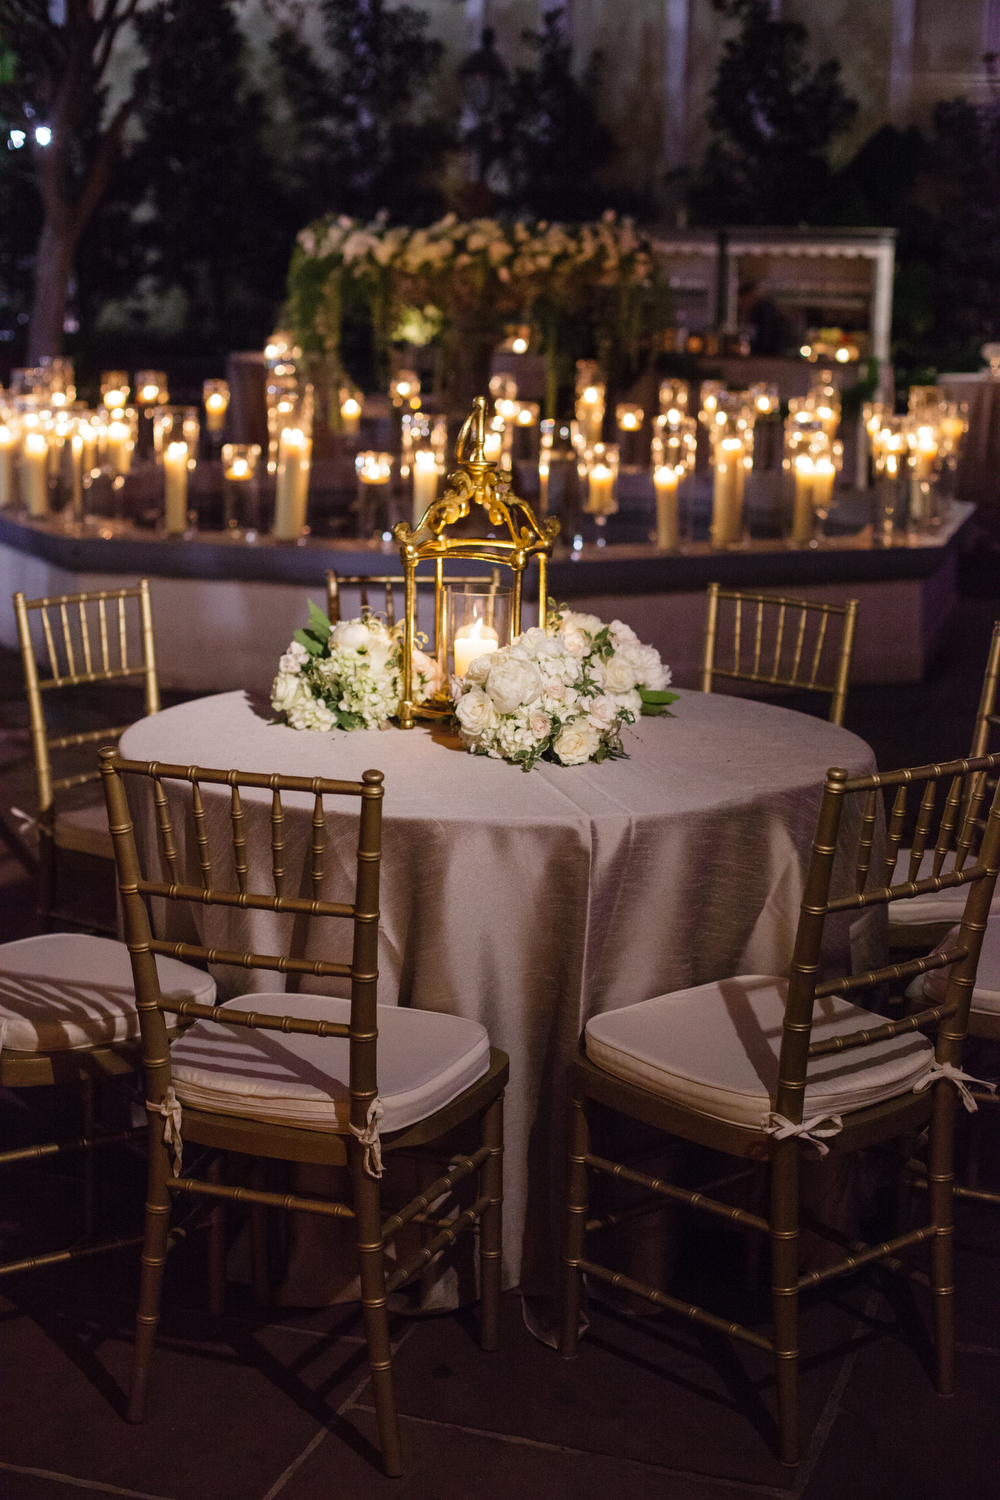 New Orleans Board of Trade courtyard decorations | Candlelight wedding | Gold French lanterns | How to transform an open ballroom with stunning decor | Sapphire Events | Greer G Photography | Board of Trade | White and Gold Wedding | Winter Wedding Inspiration | White and Green Wedding | Ballroom wedding